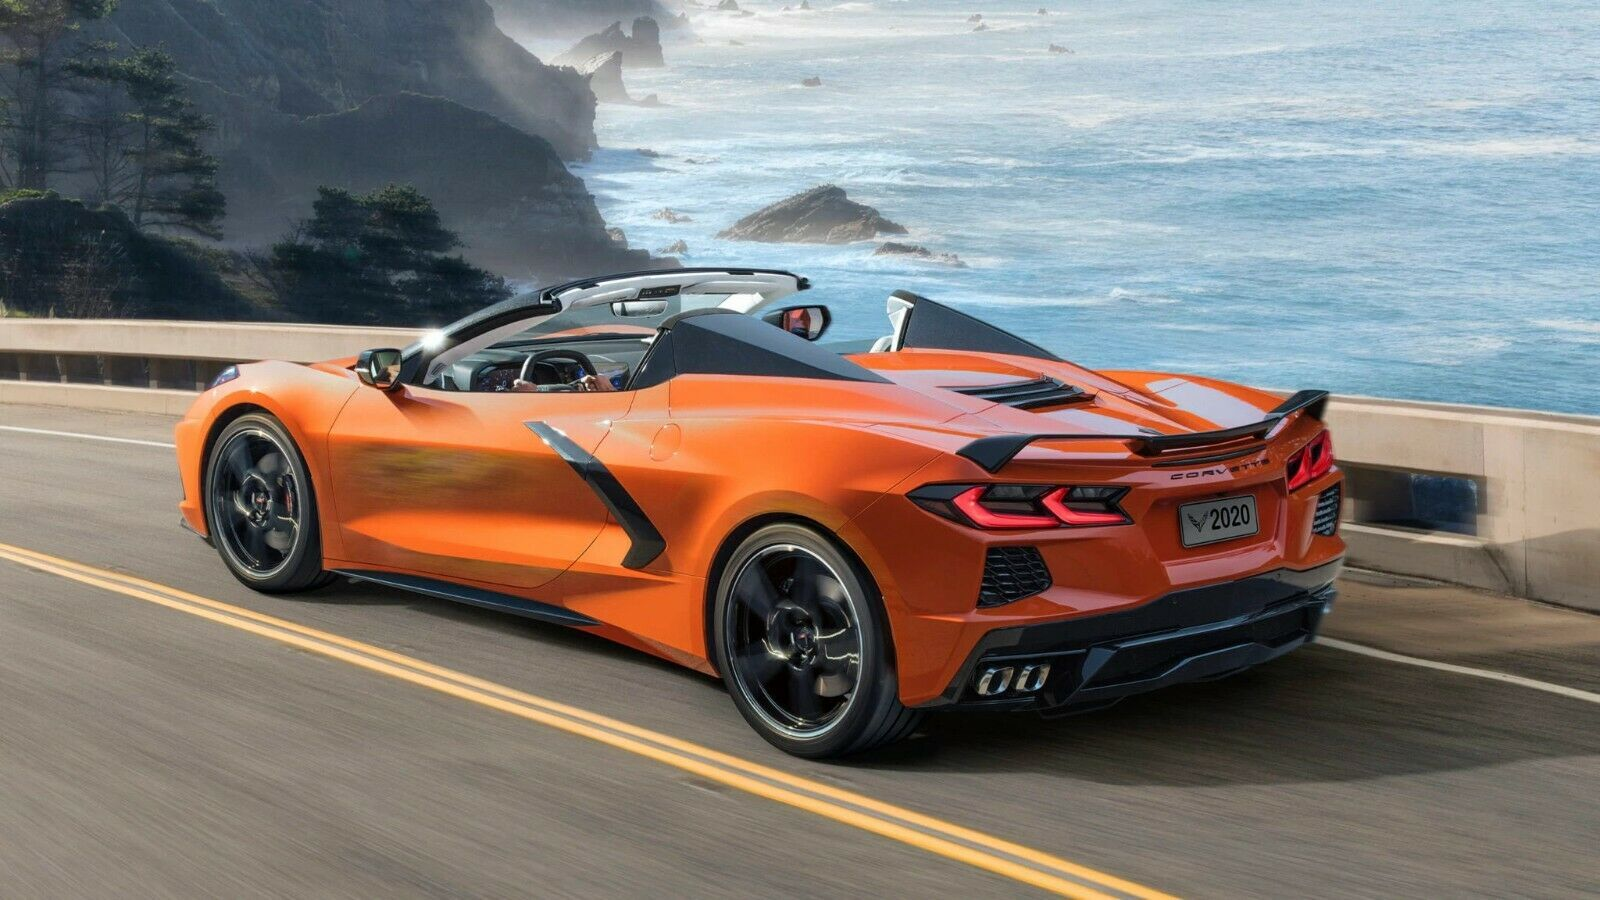 Primary image for 2020 Corvette Orange C8 Convertible 24X36 inch poster, sports car,